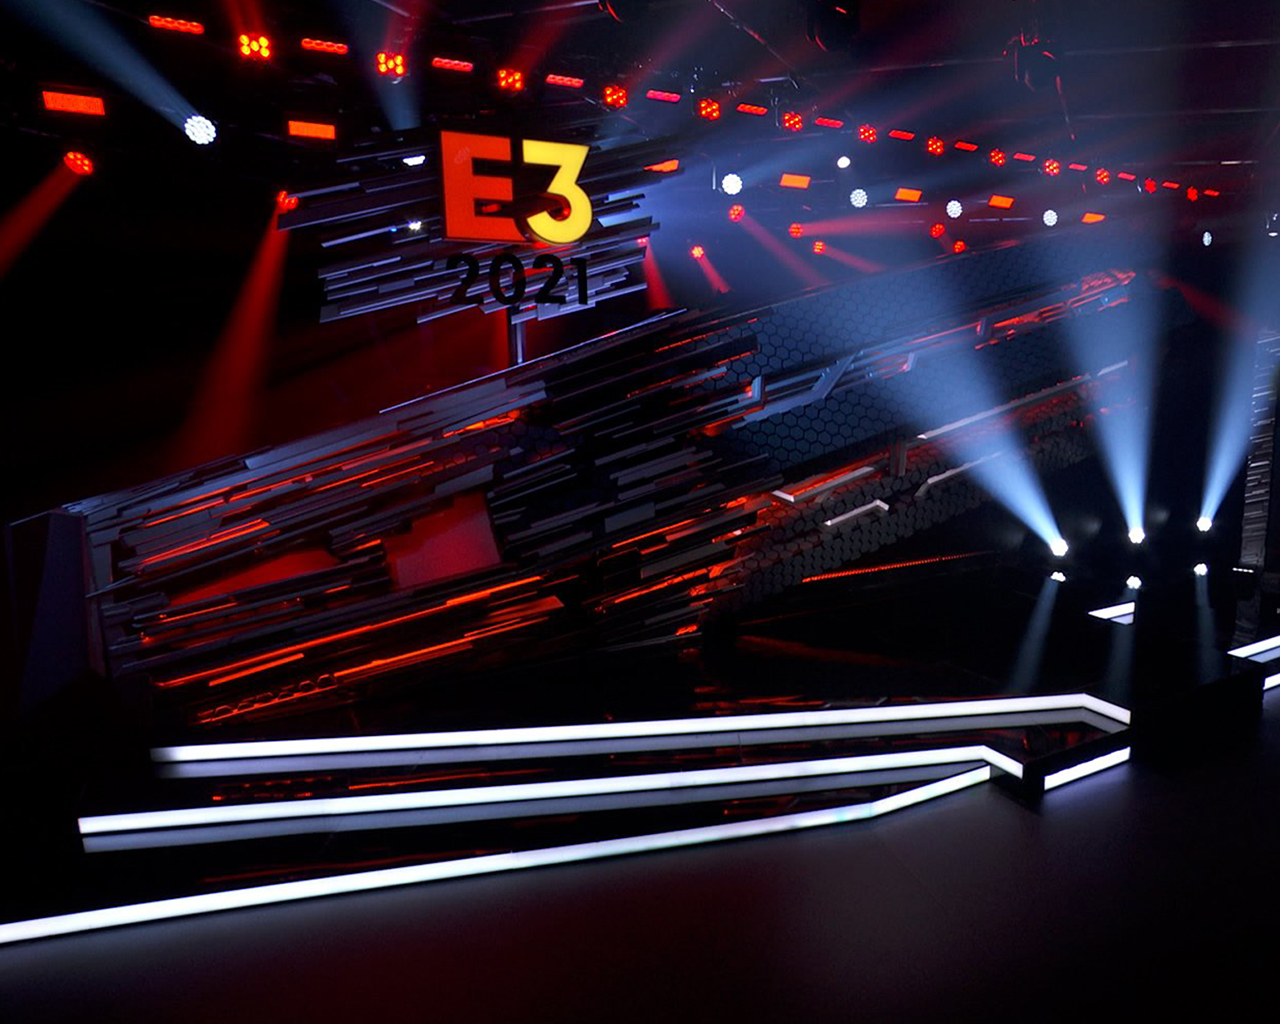 E3 2021 stage with dramatic lighting